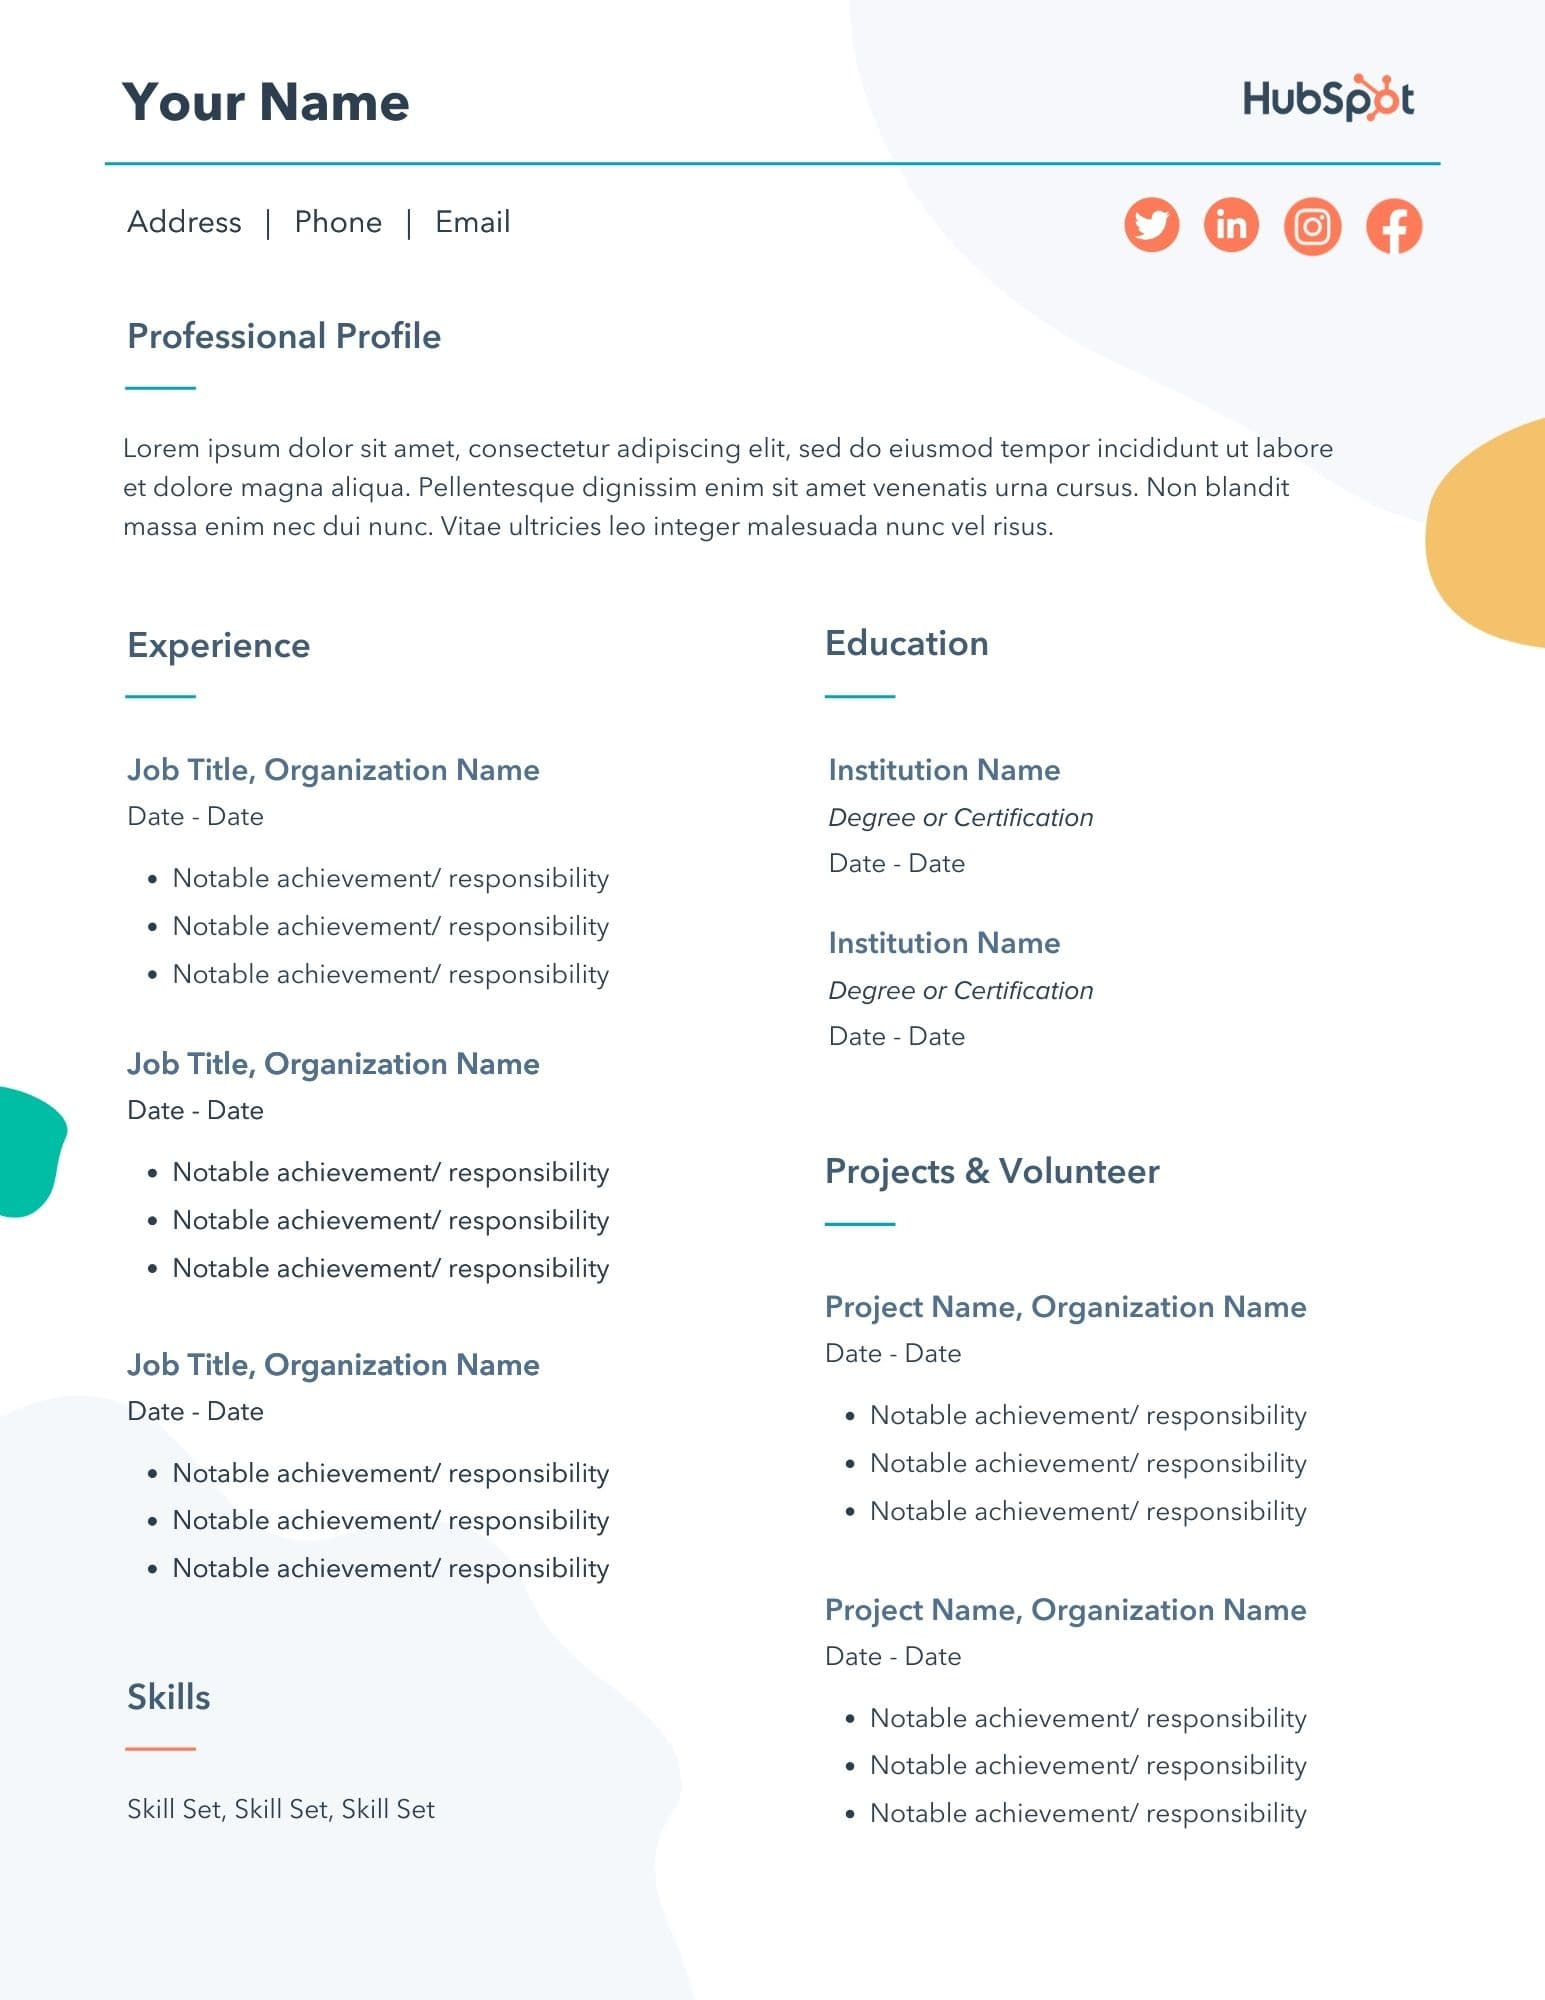 free resume templates for microsoft word to make your own sample header designs template Resume Sample Resume Header Designs